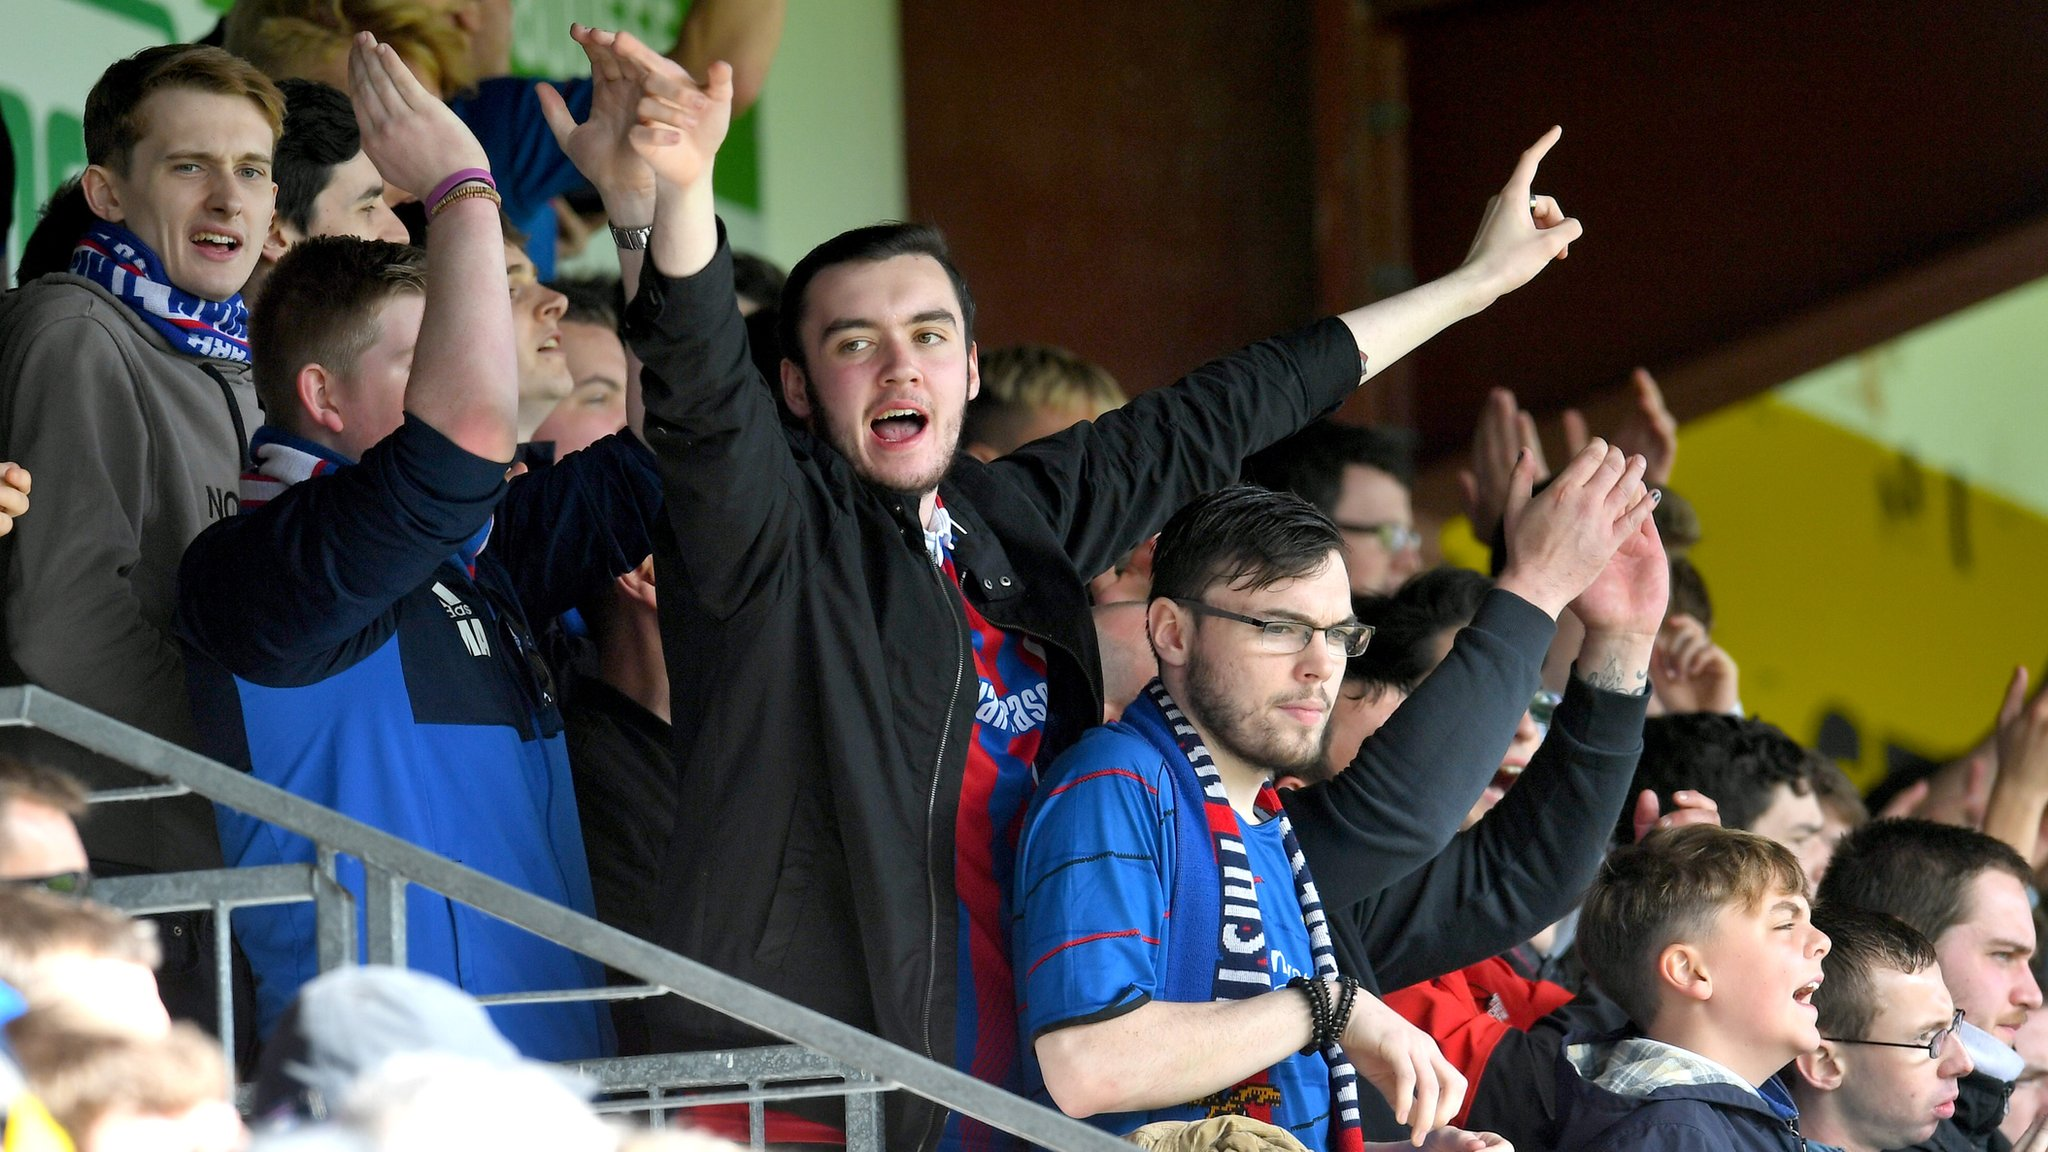 Falling crowds prove 'huge challenge' for Inverness CT